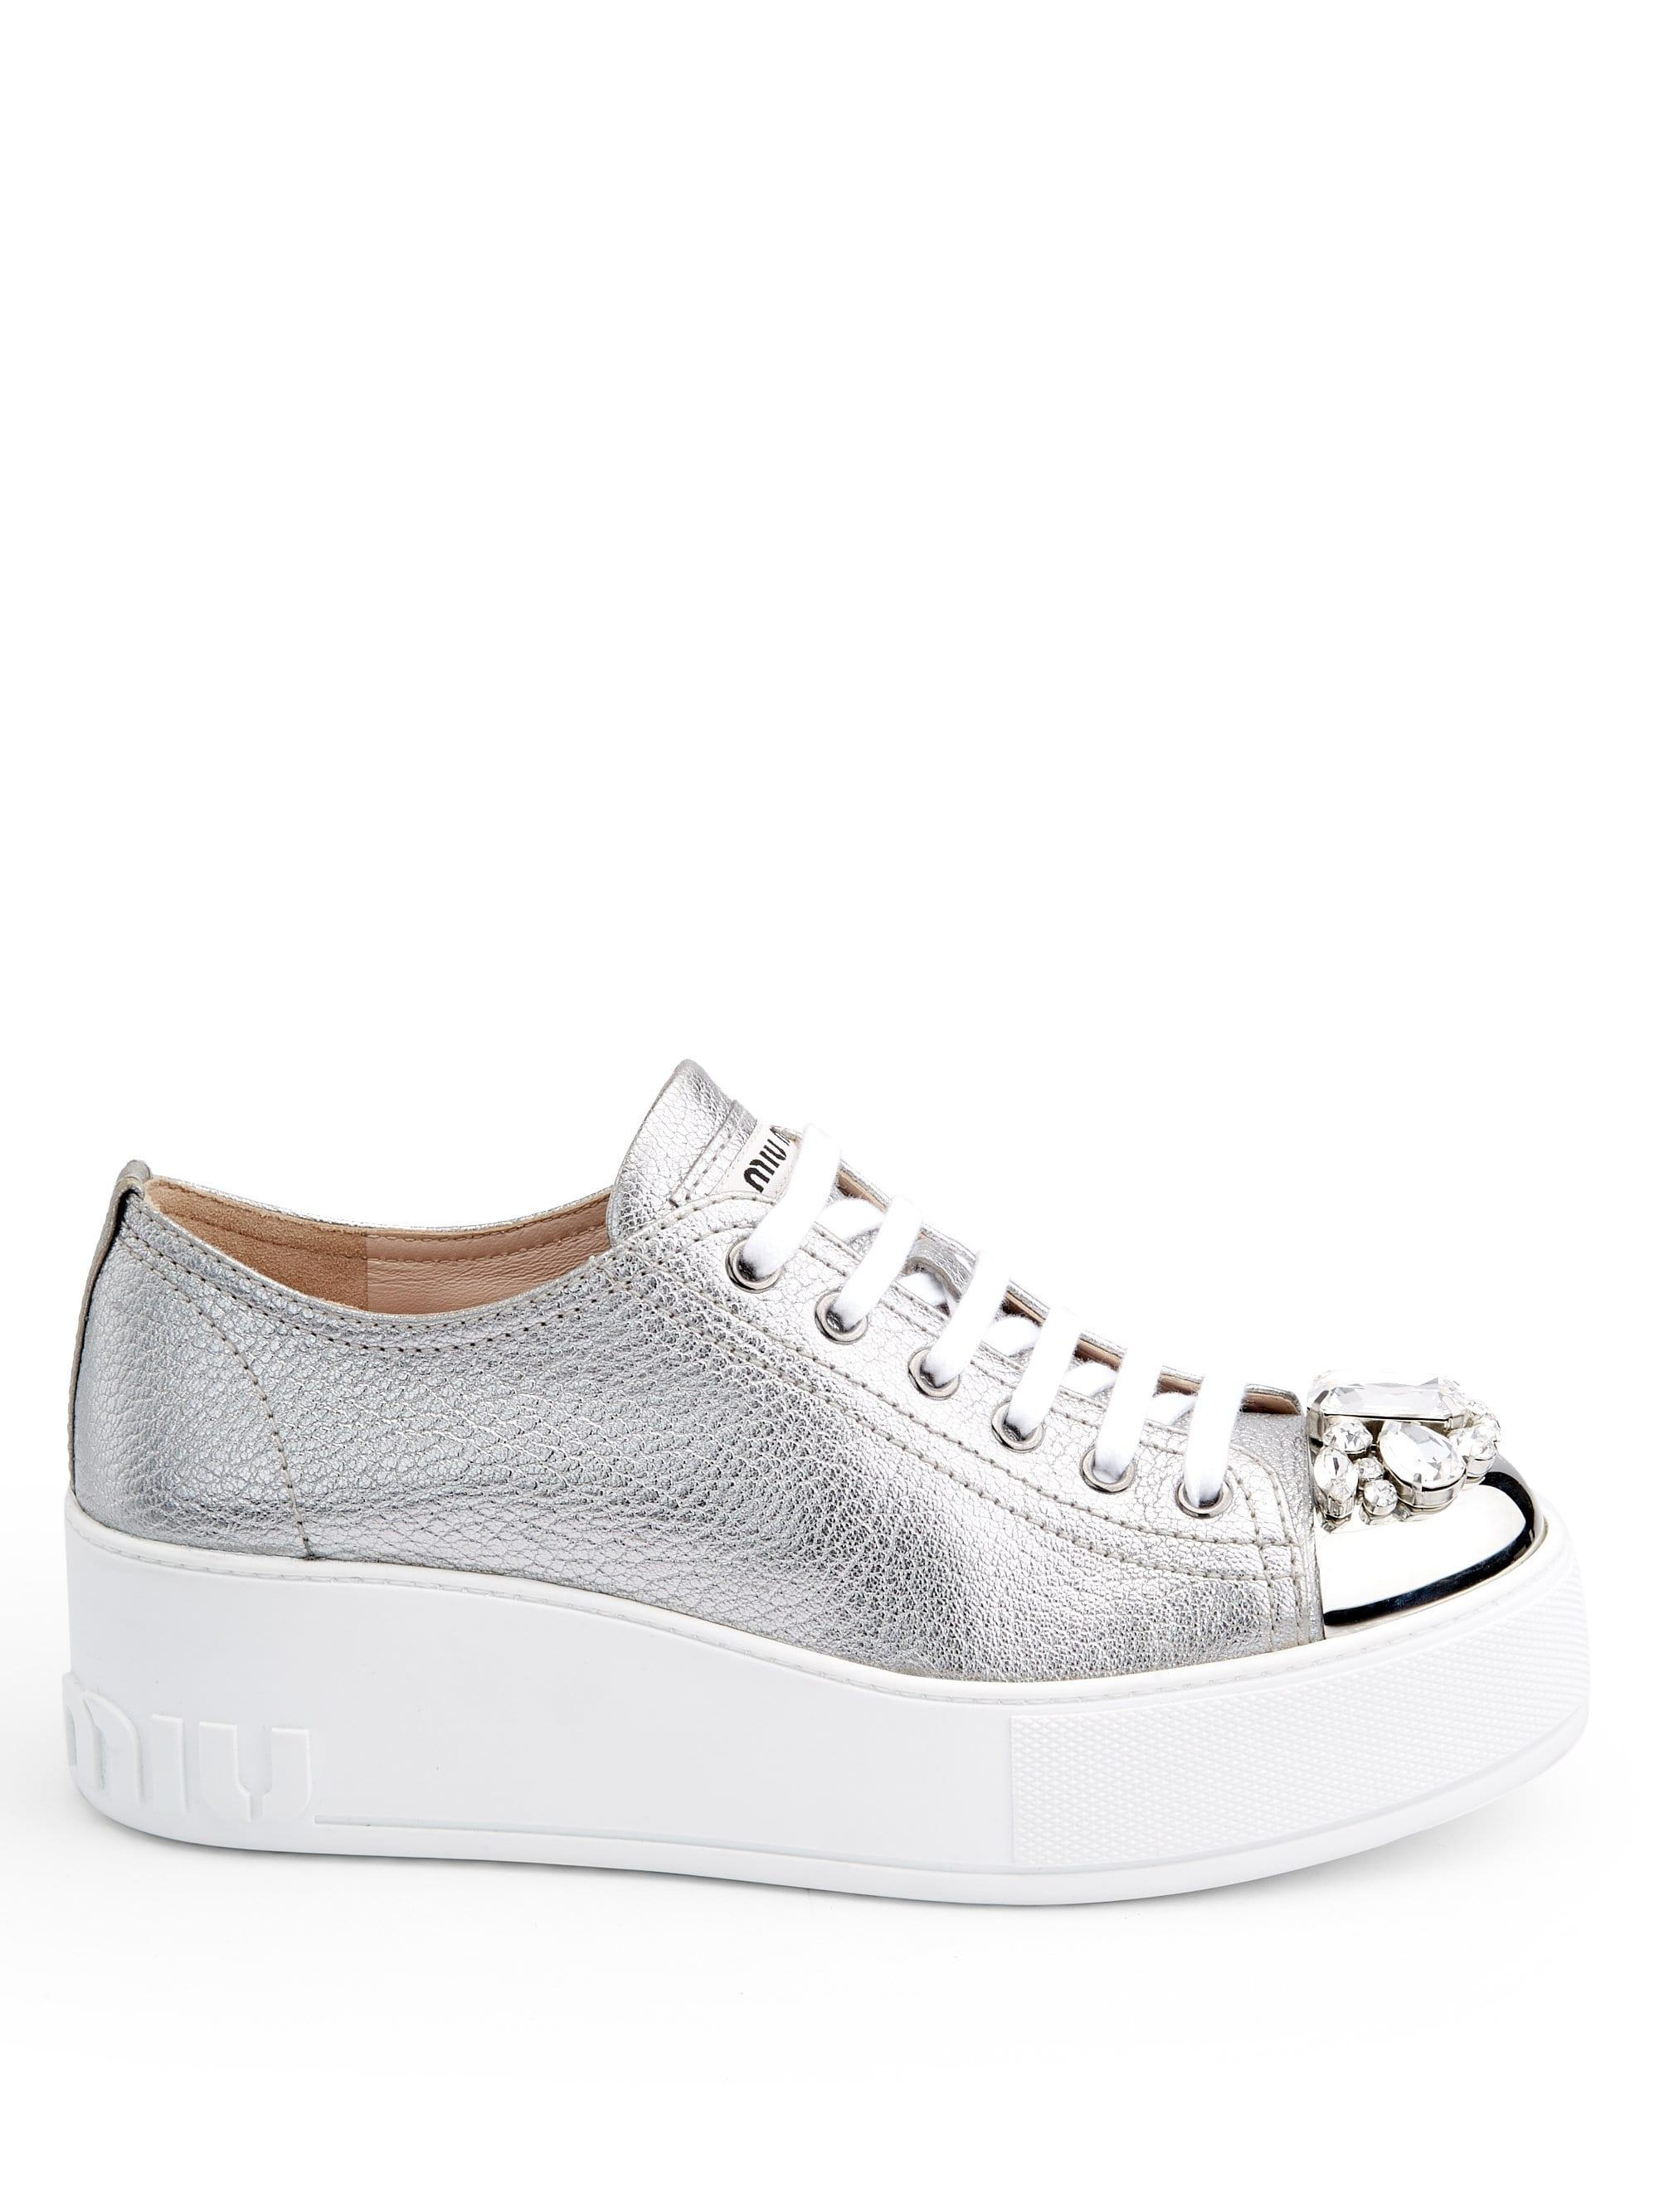 afffceddfb5 Miu Miu - Multicolor Embellished Leather Cap Toe Platform Wedge Sneakers -  Lyst. View fullscreen